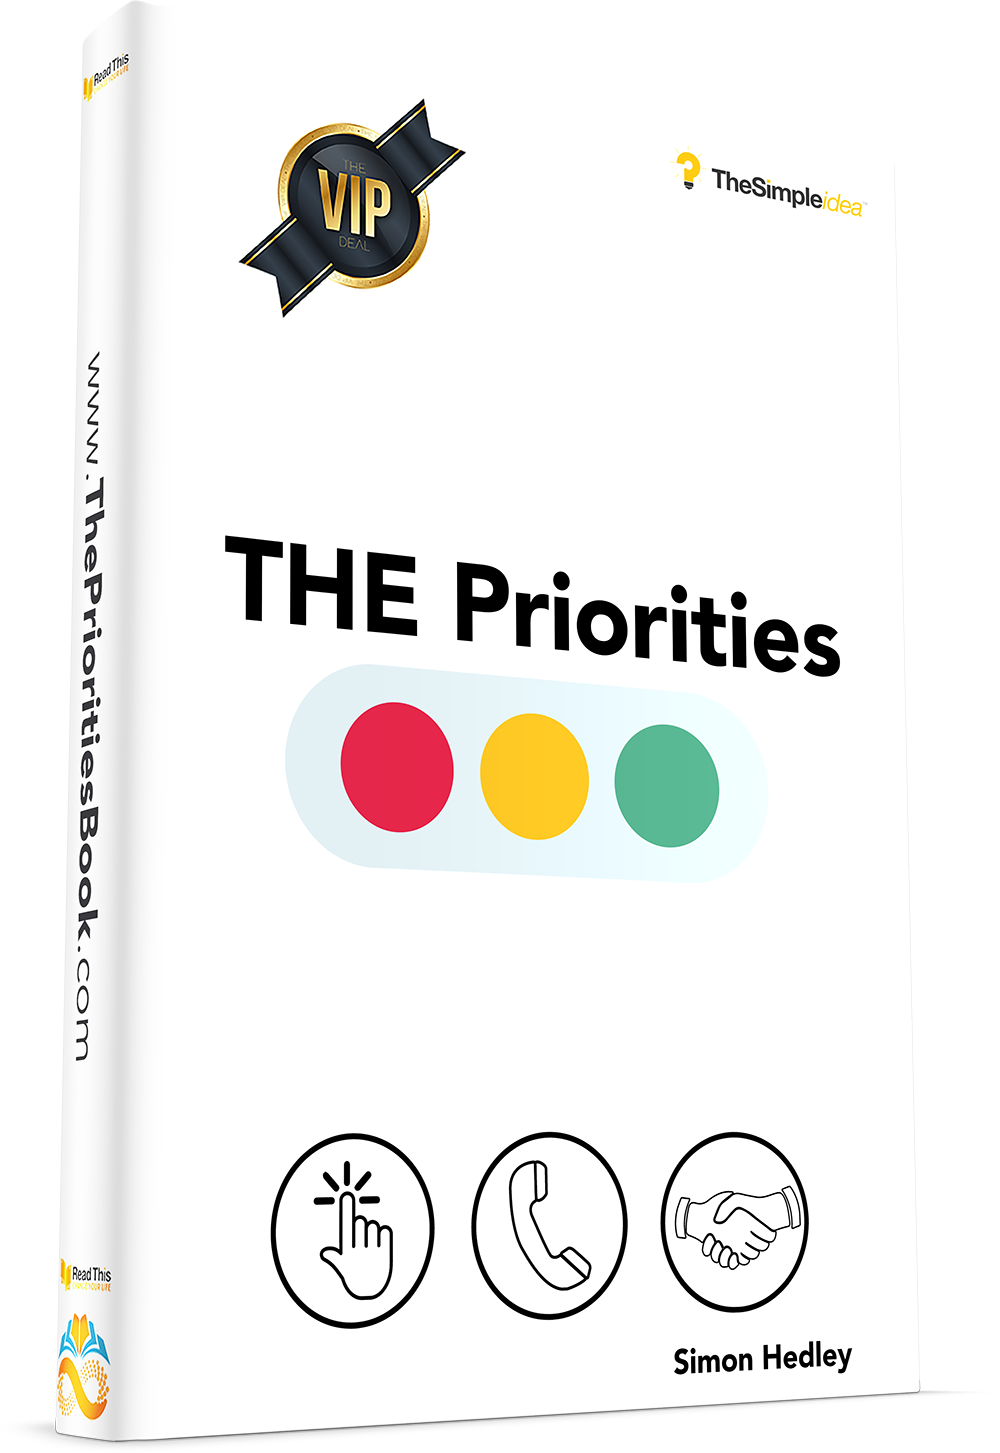 THE Priorities Book™